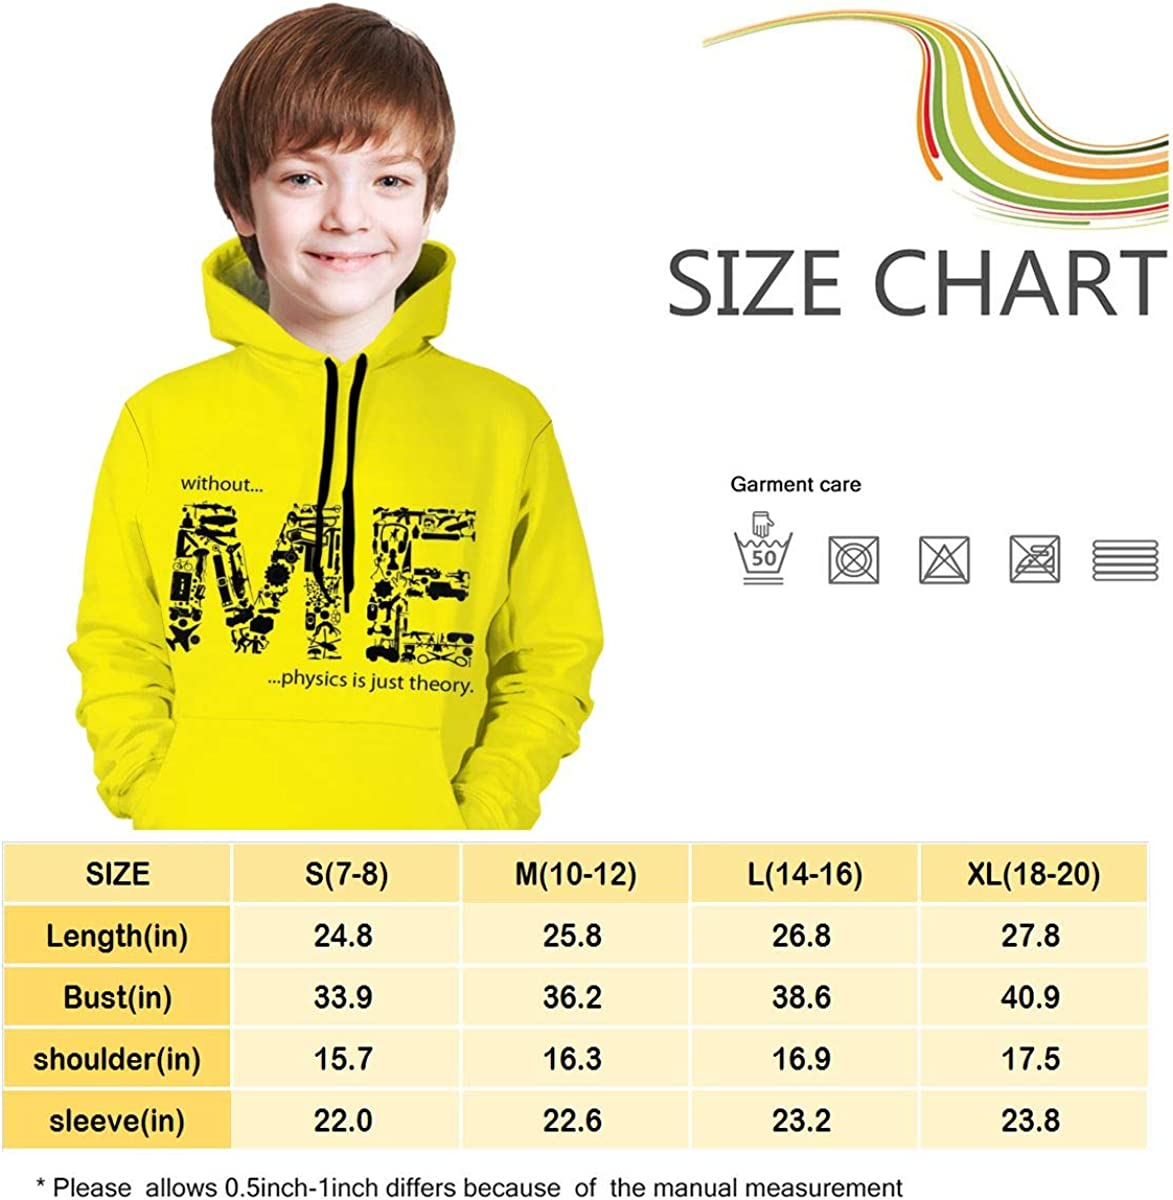 Kjiurhfyheuij Teen Pullover Hoodies with Pocket Me Soft Fleece Hooded Sweatshirt for Youth Teens Kids Boys Girls